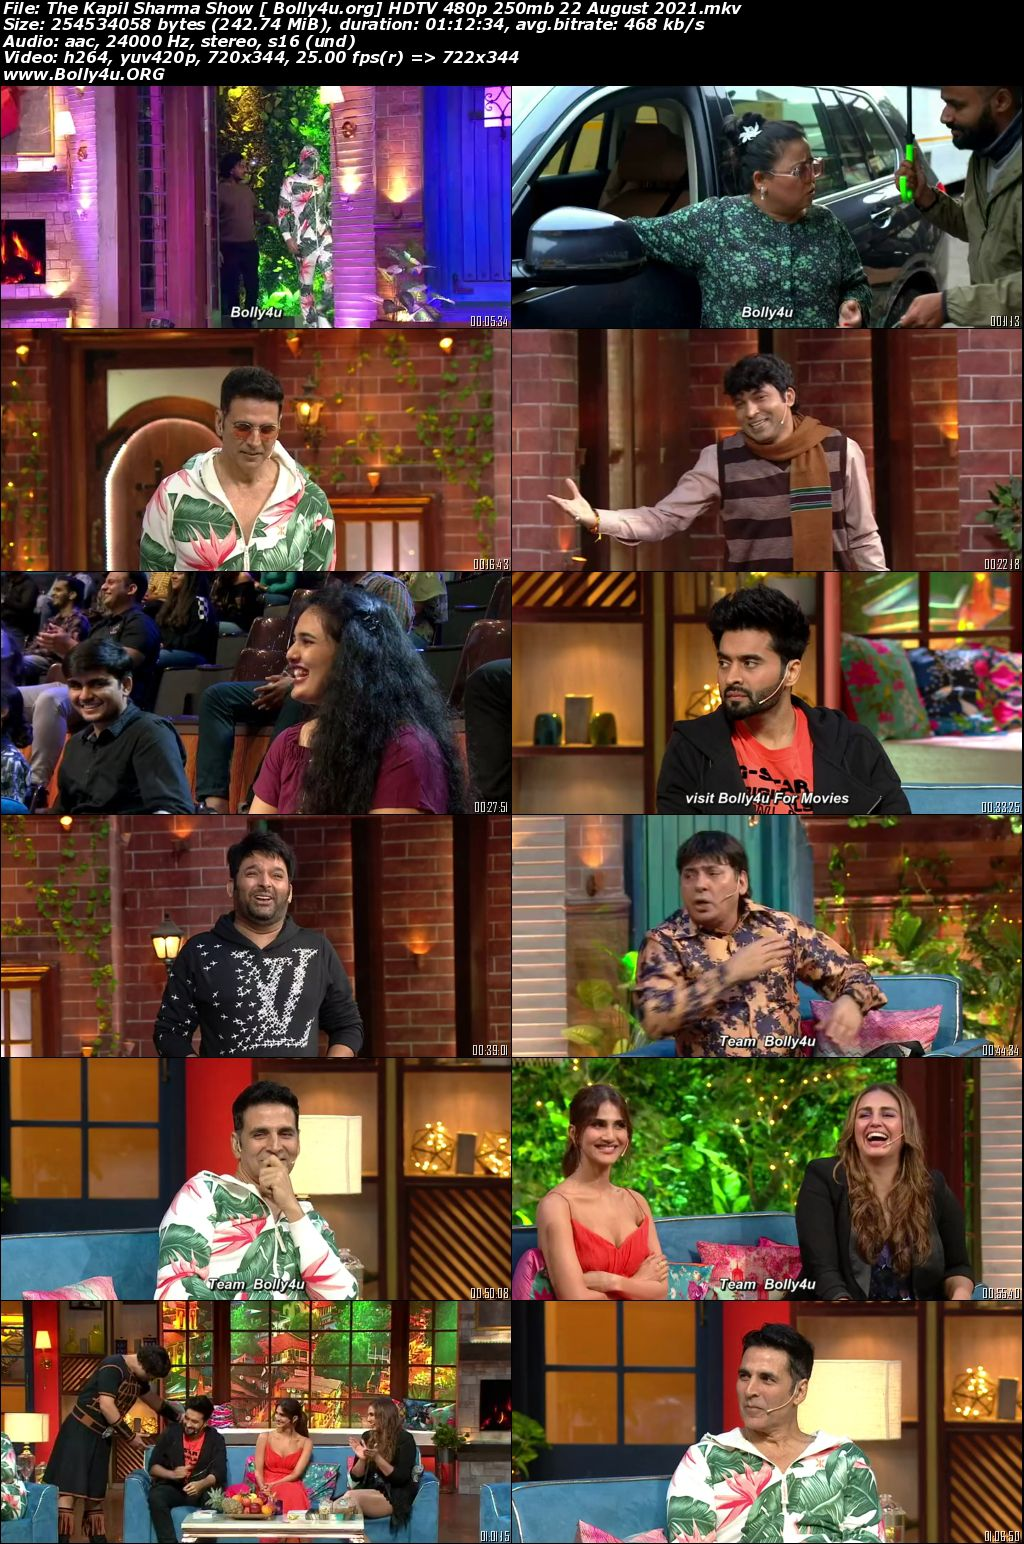 The Kapil Sharma Show HDTV 480p 250mb 22 August 2021 Download